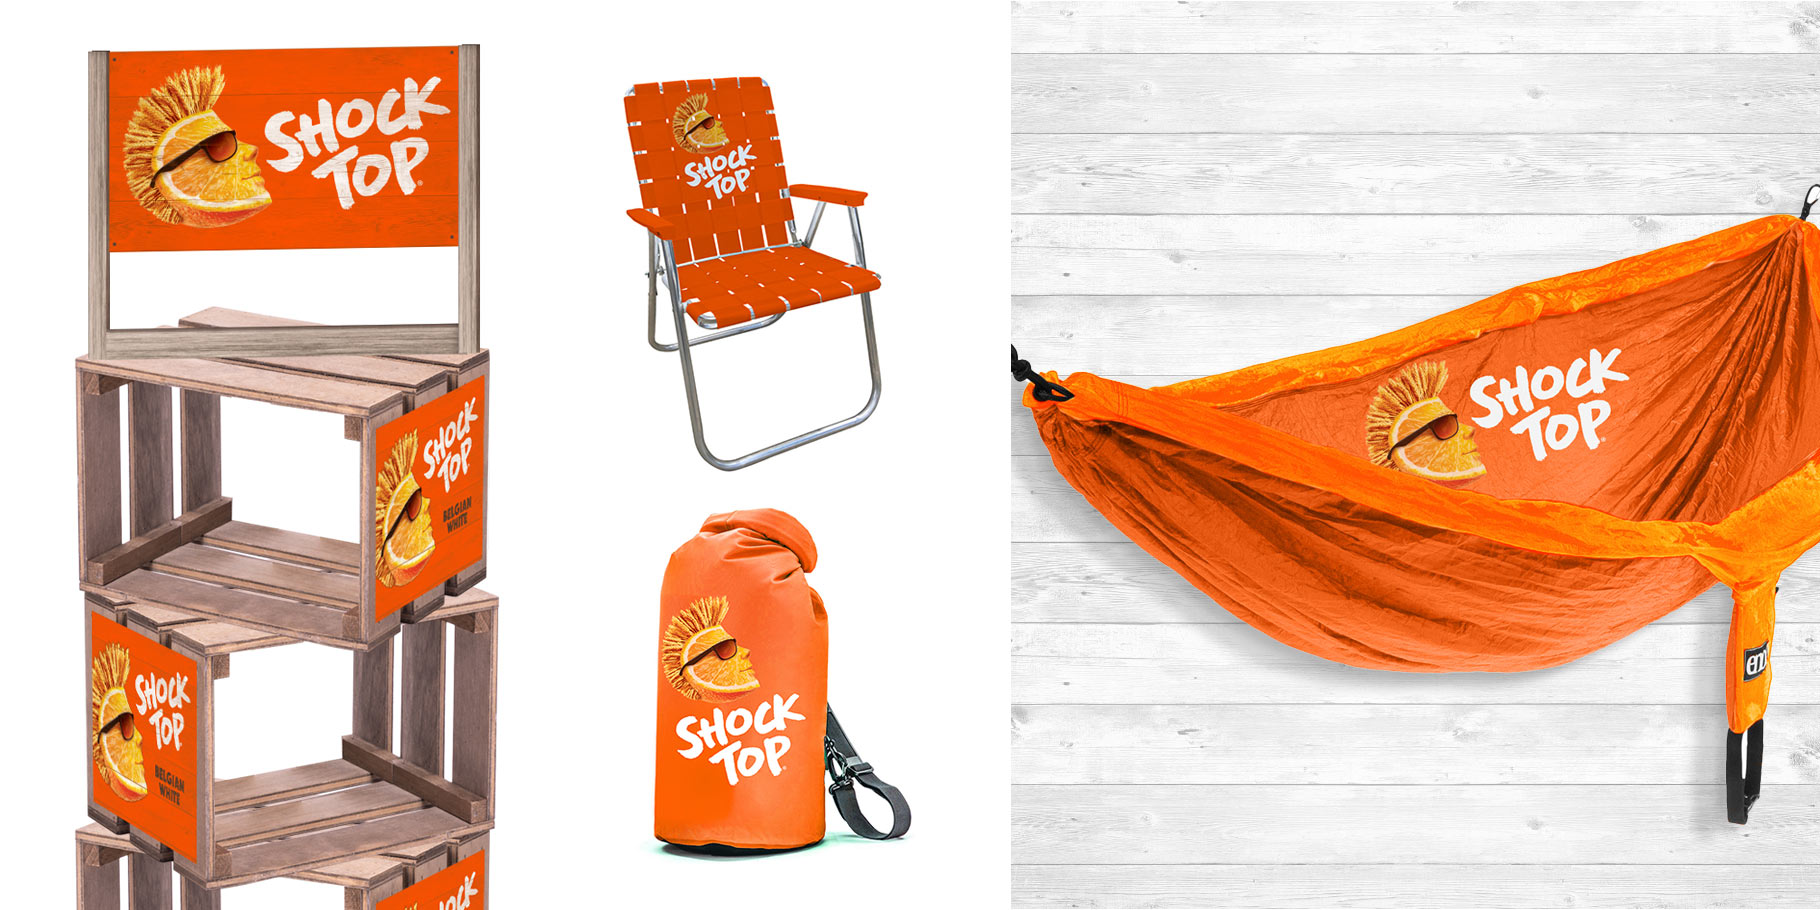 various Shock Top logo extensions on crates, a chair, sleeping bag and hammock